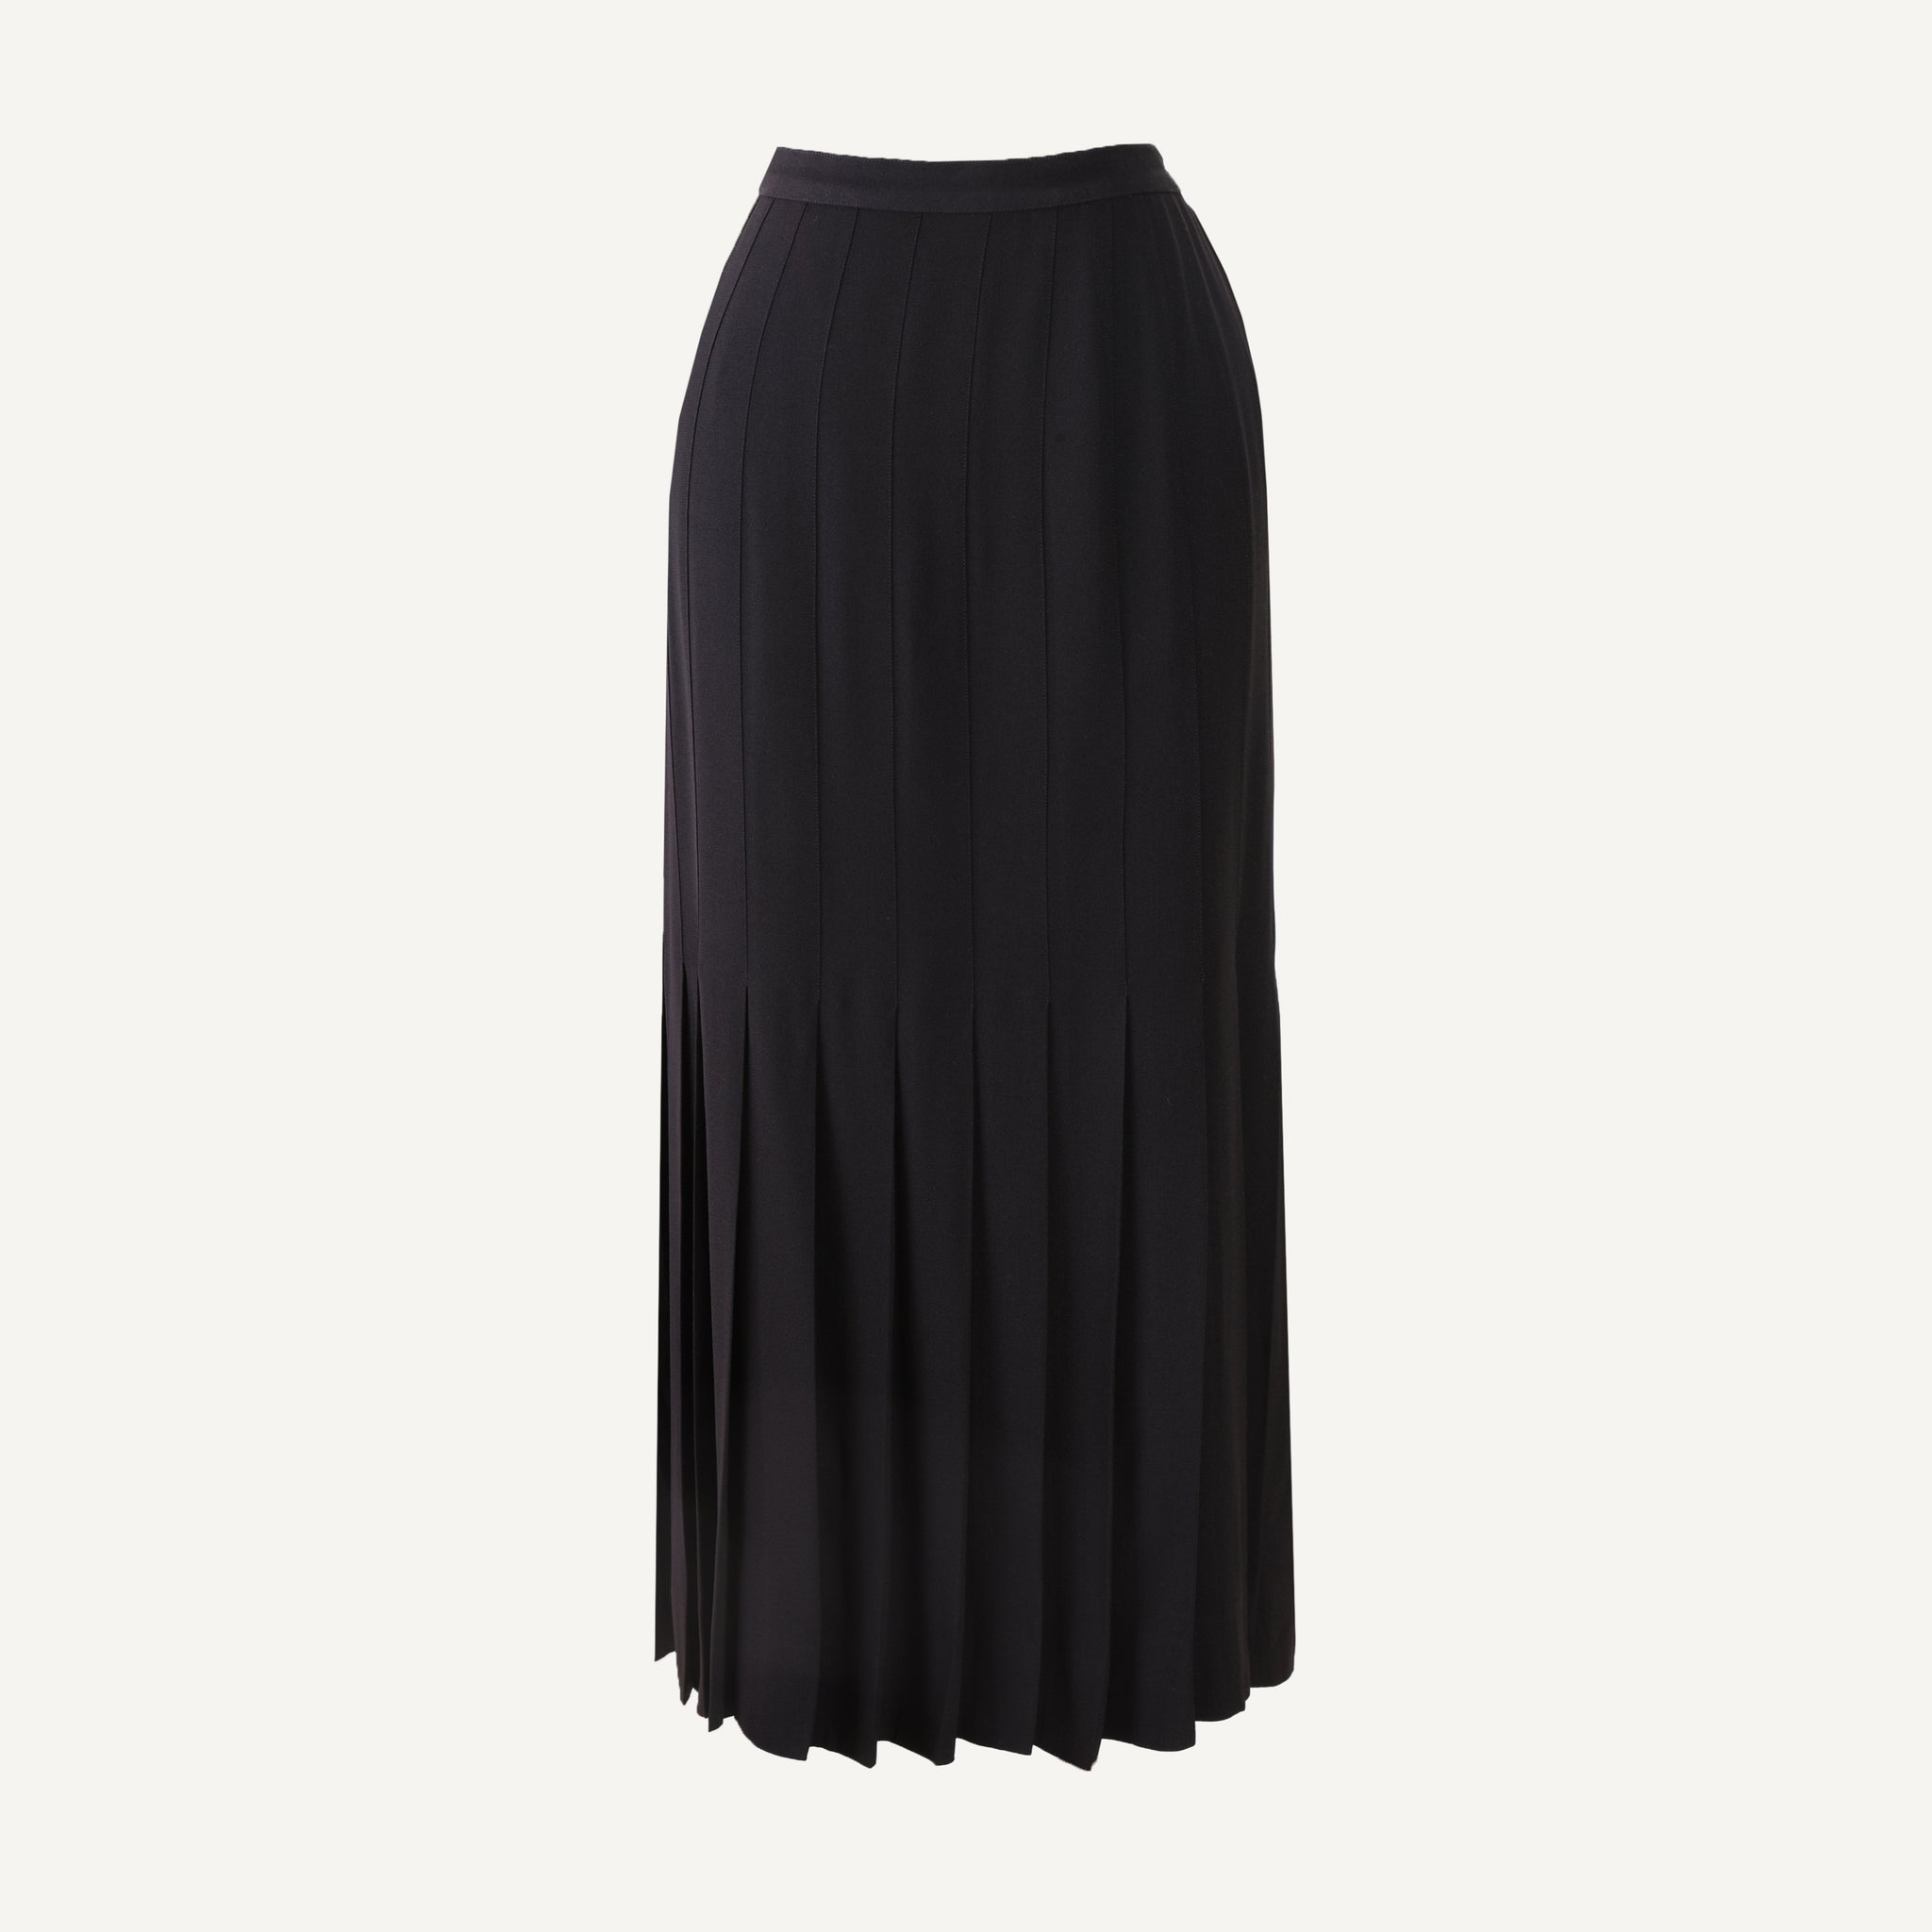 VINTAGE CHANEL PLEATED SKIRT